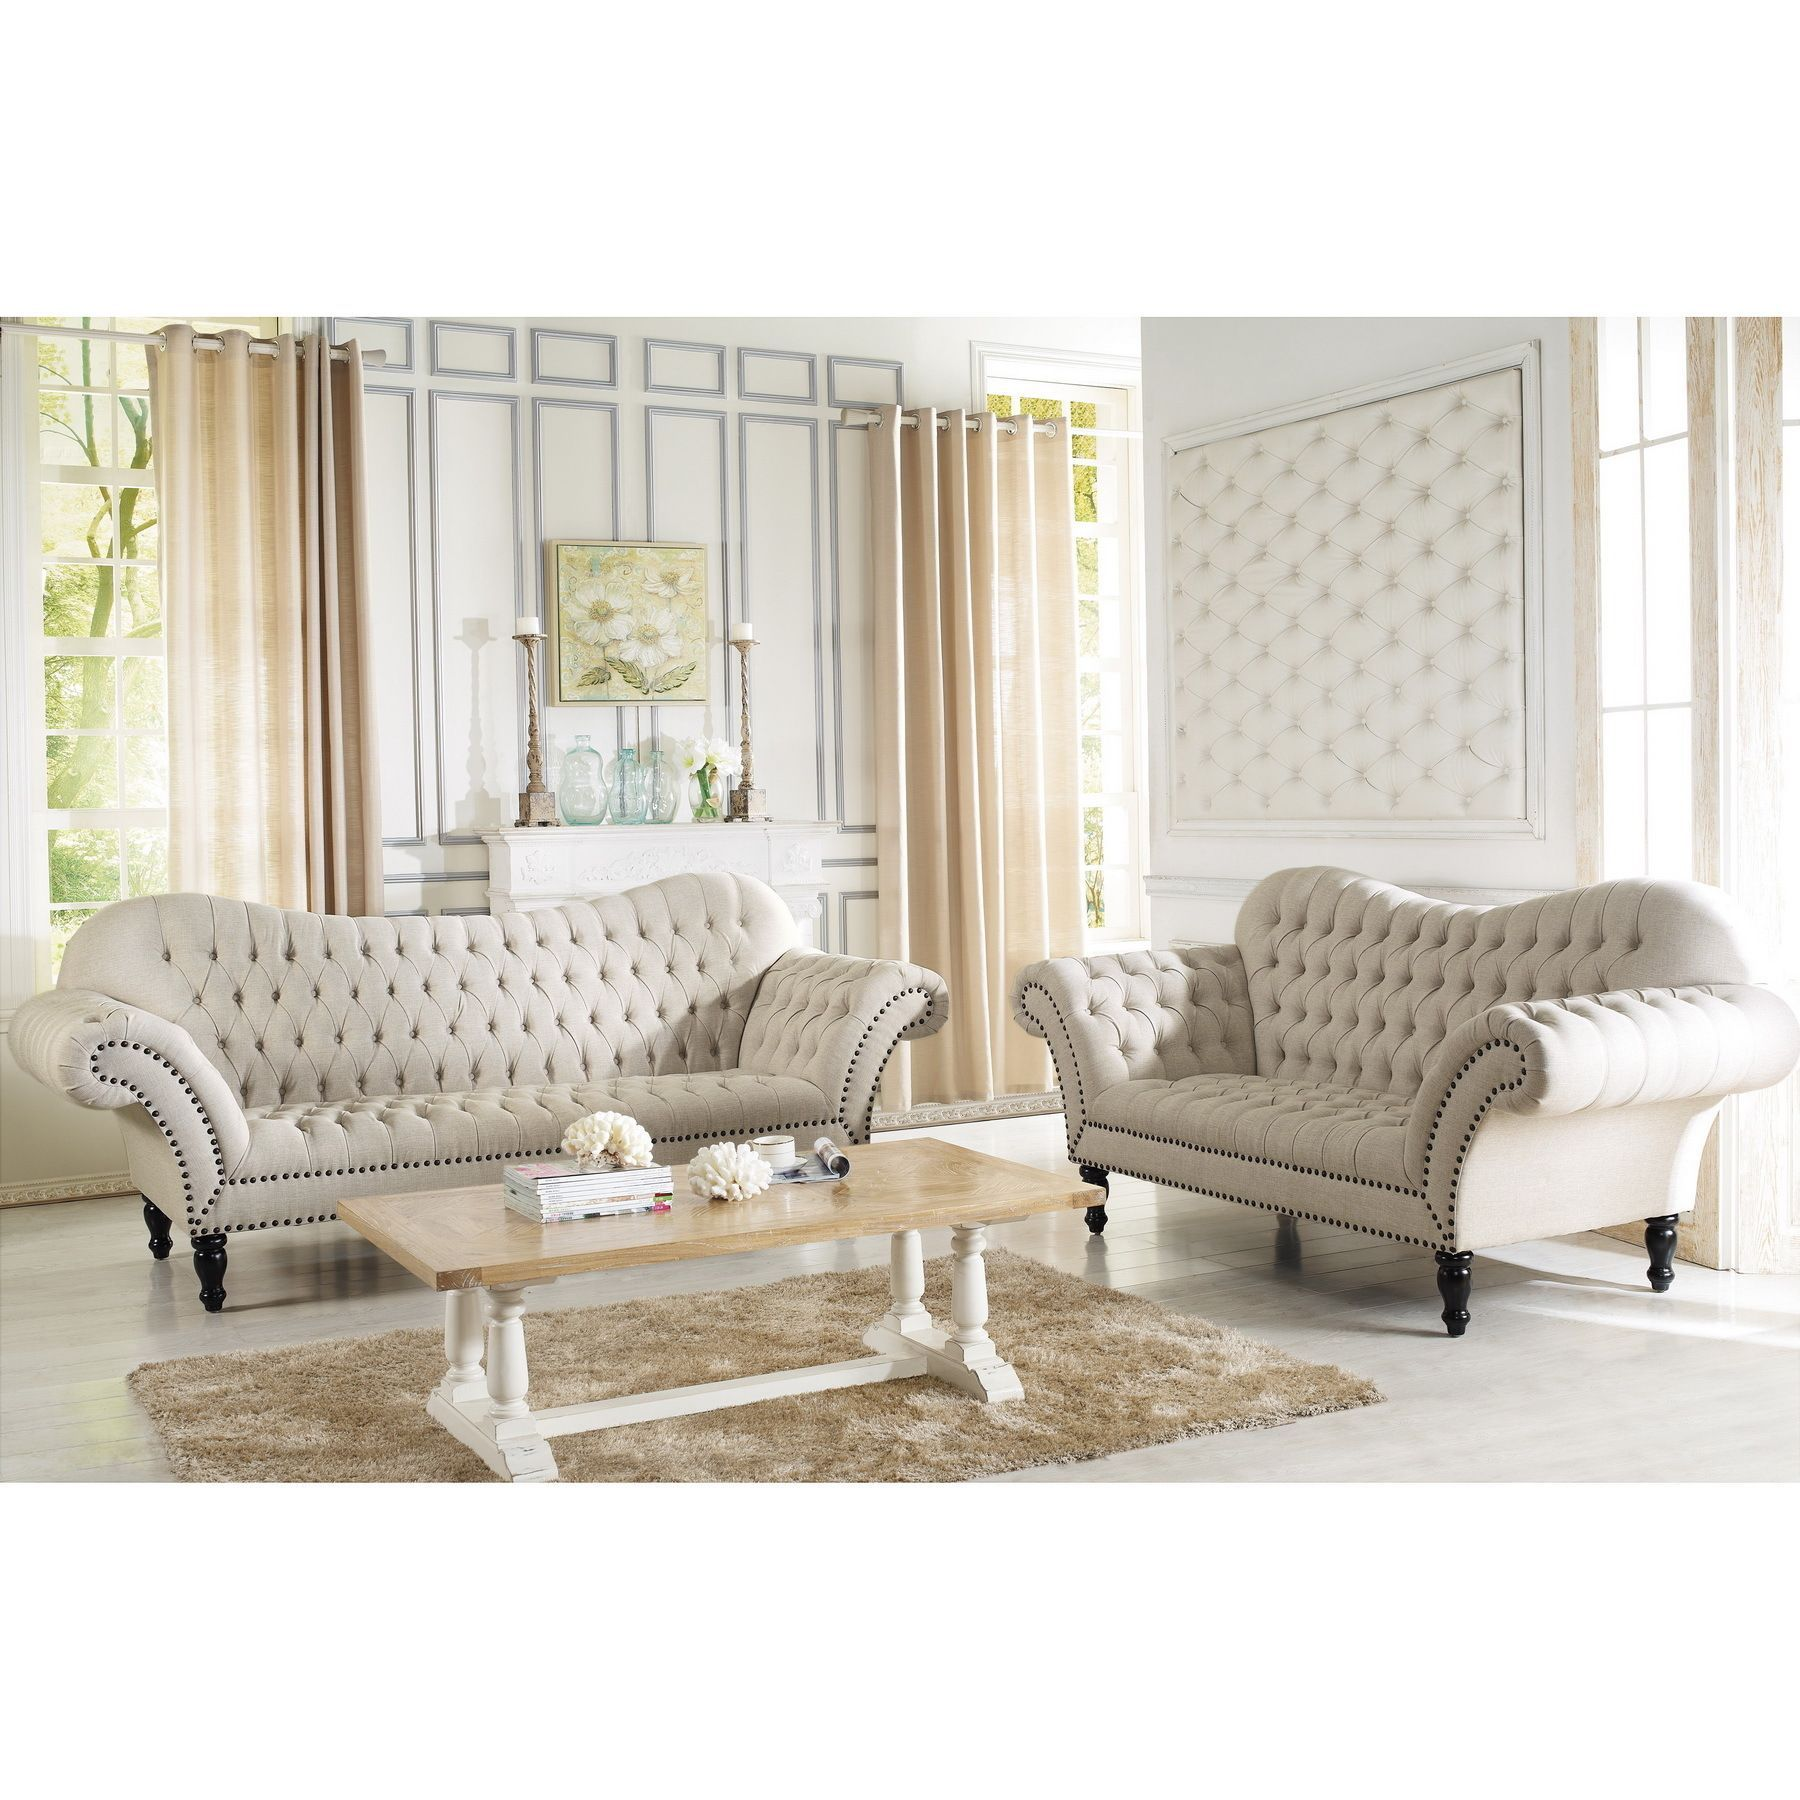 Baxton Studio Bostwick Beige Linen Classic Victorian Sofa Set   Overstock™  Shopping   Big Discounts On Baxton Studio Living Room Sets Part 86